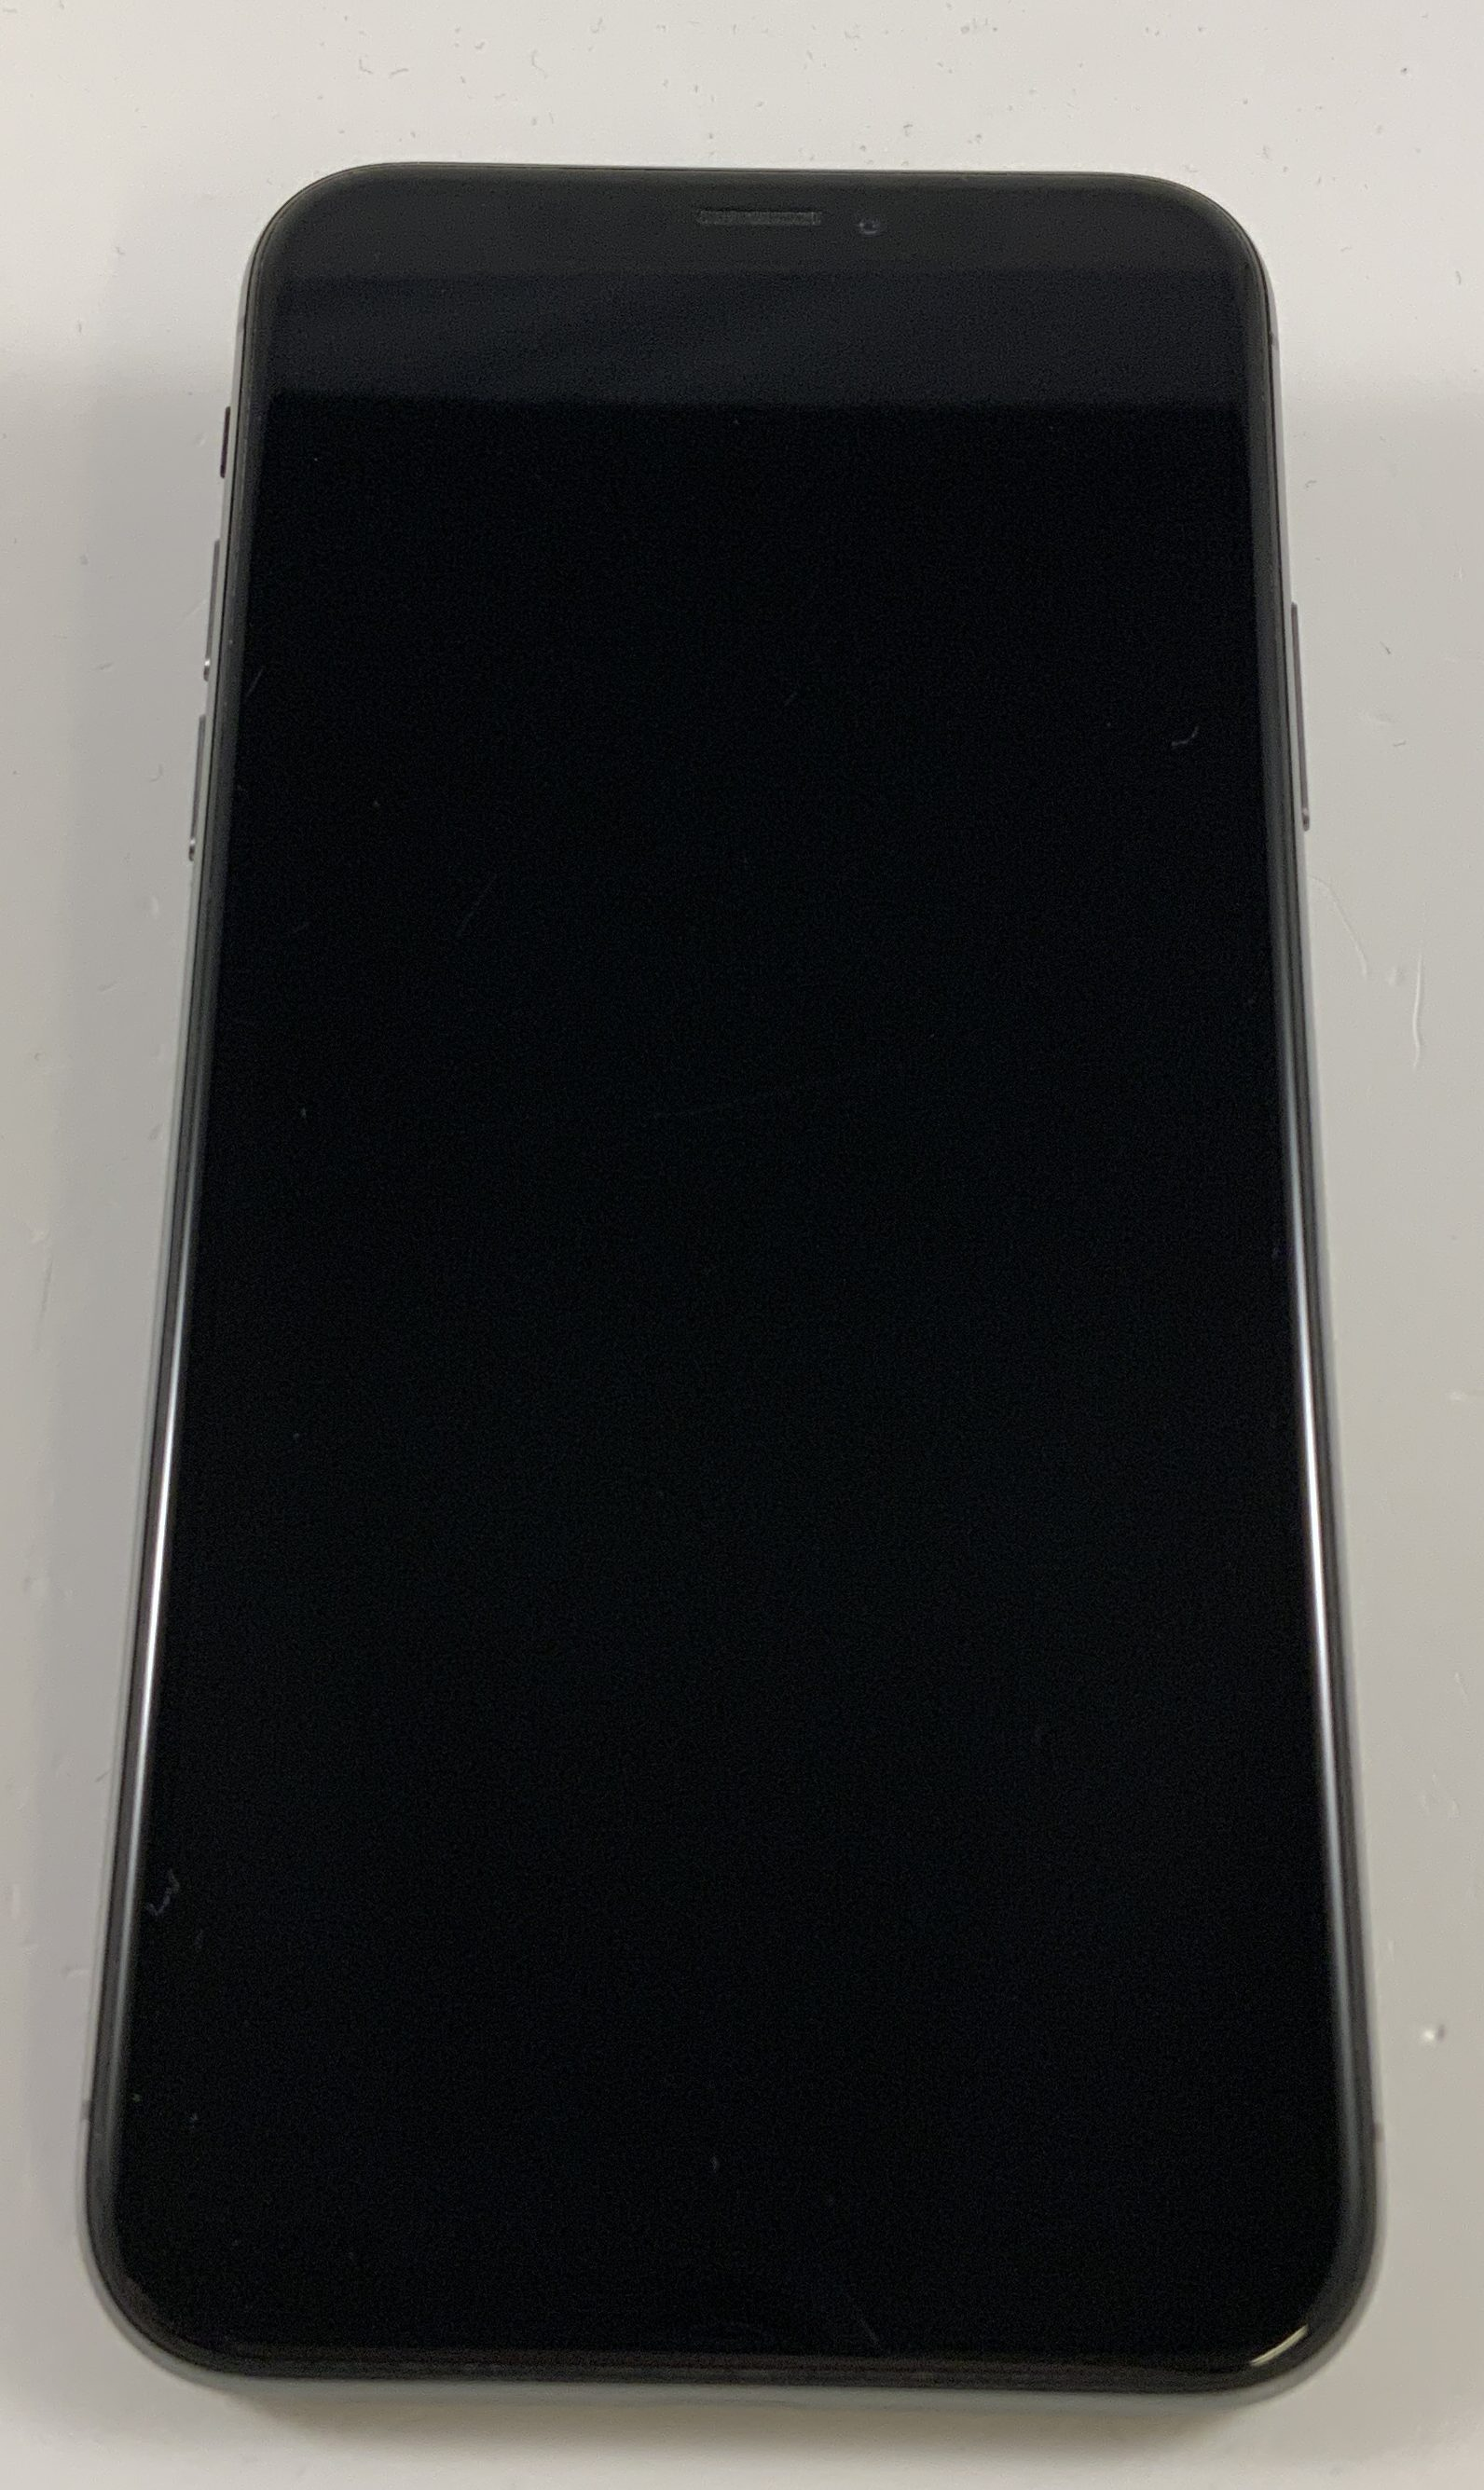 iPhone X 256GB, 256GB, Space Gray, Kuva 1